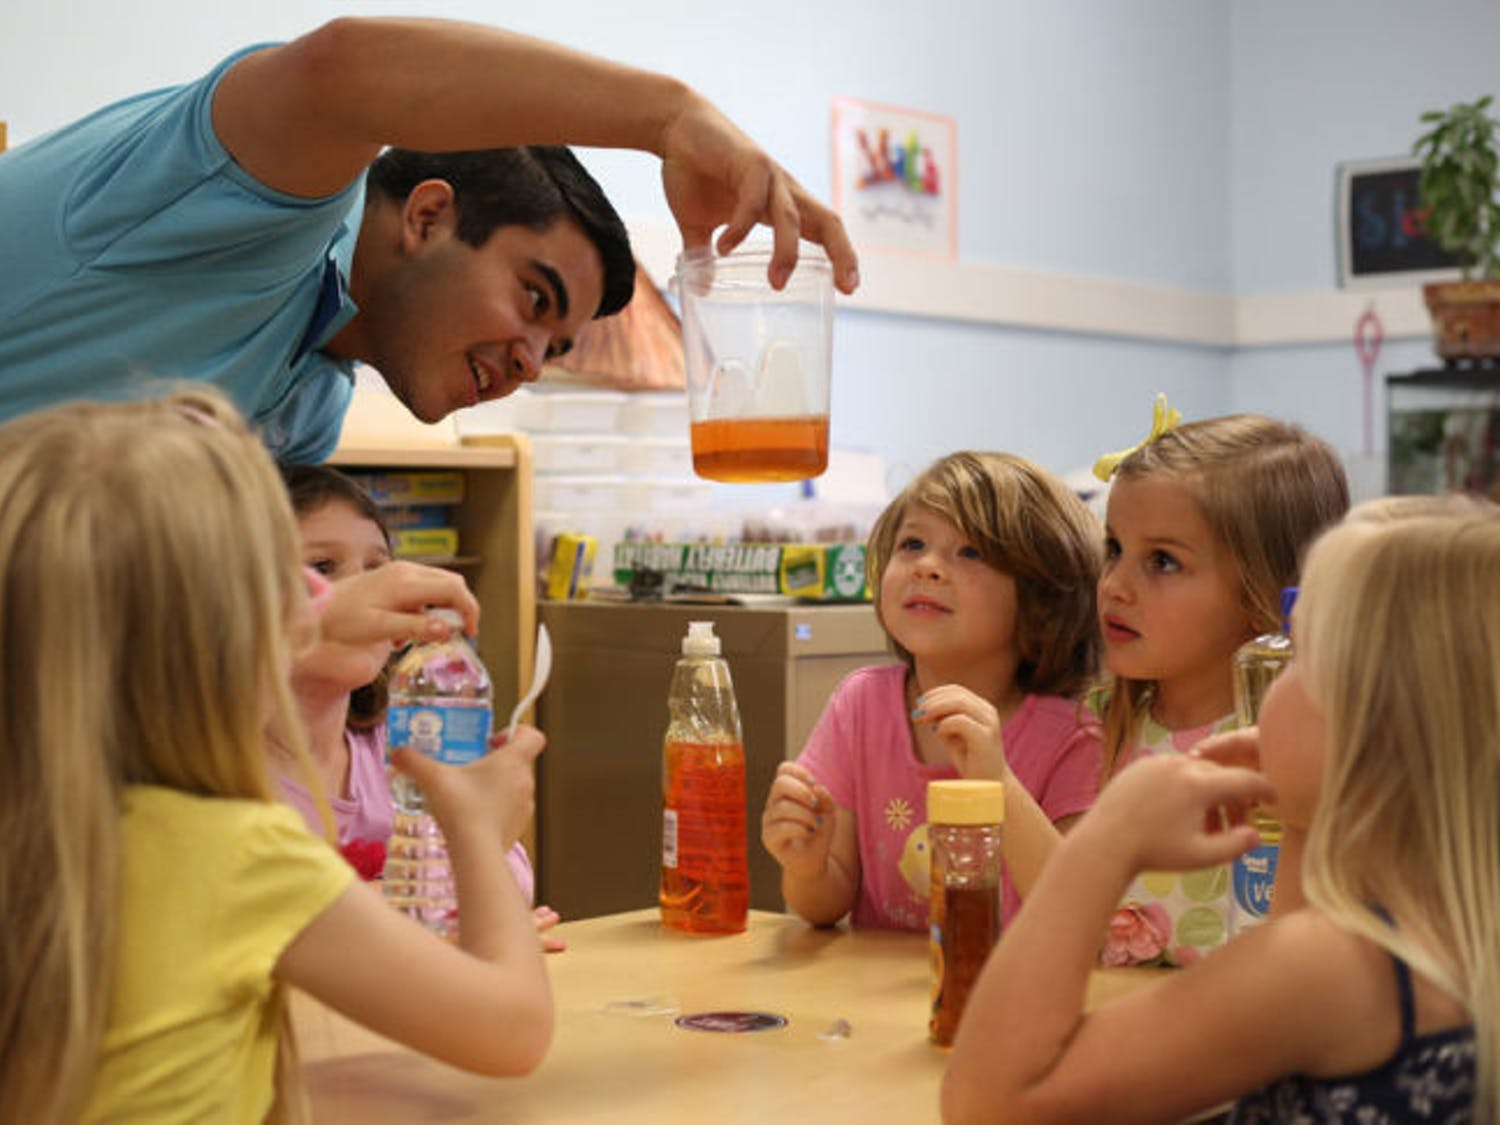 Engineering ambassador Fernando Barroso teaches Baby Gators about fluid density using soap, honey and water on Tuesday. EA and the American Institute of Aeronautics and Astronautics hosted an activity day at the preschool.